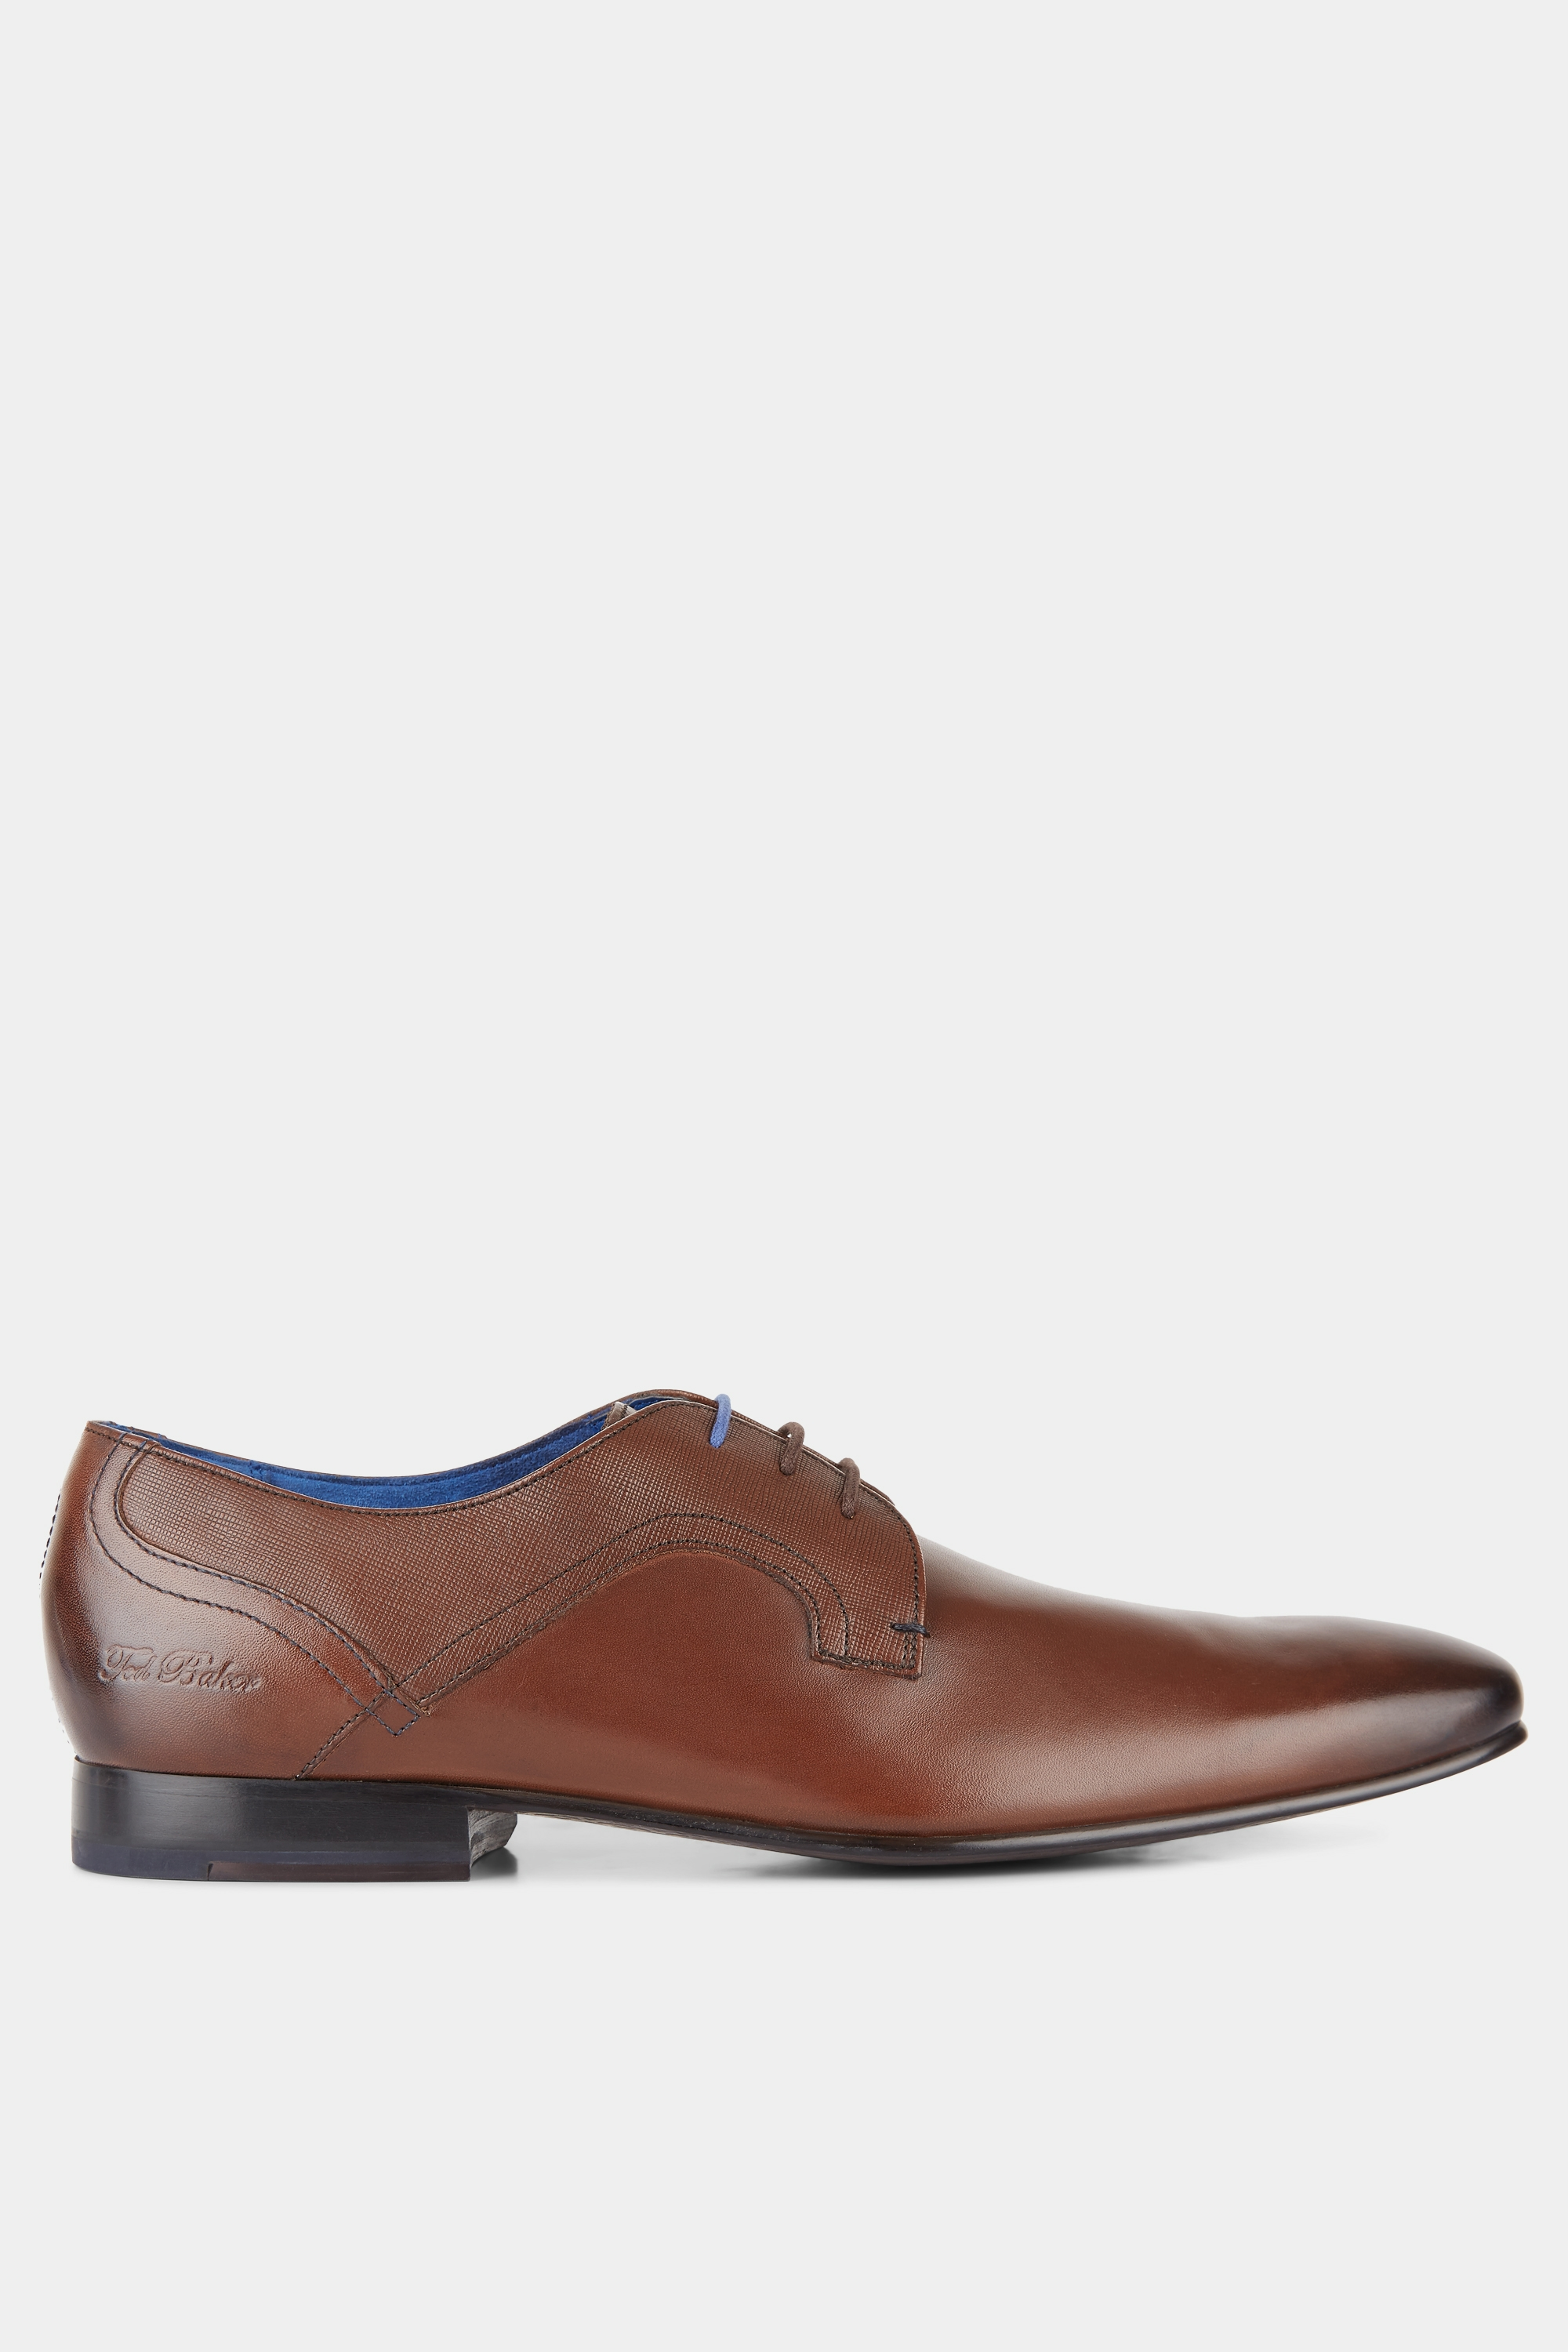 Ted Baker City Pelton Brown Derby Shoes